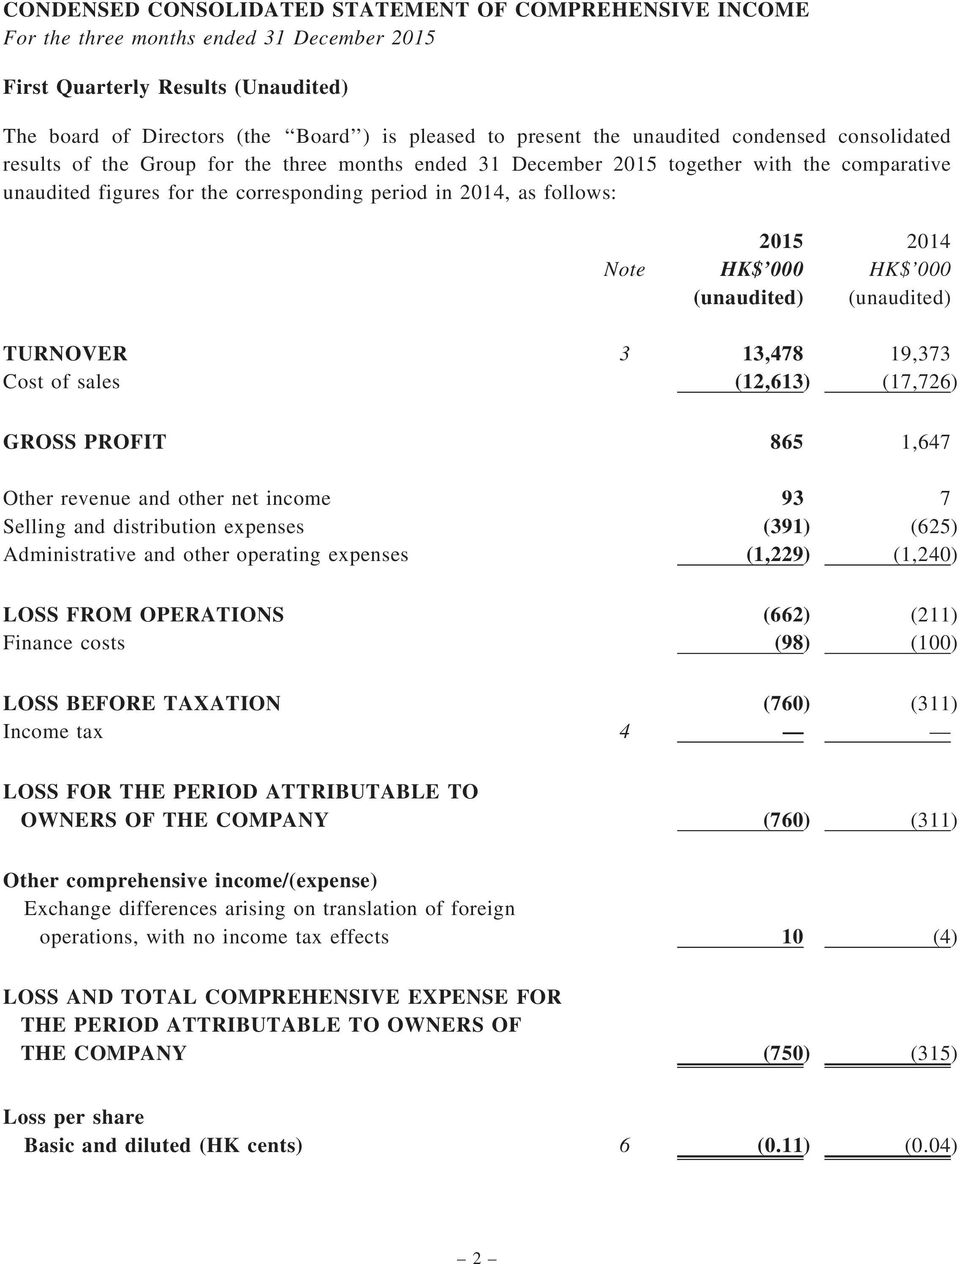 2015 2014 Note HK$ 000 HK$ 000 (unaudited) (unaudited) TURNOVER 3 13,478 19,373 Cost of sales (12,613) (17,726) GROSS PROFIT 865 1,647 Other revenue and other net income 93 7 Selling and distribution